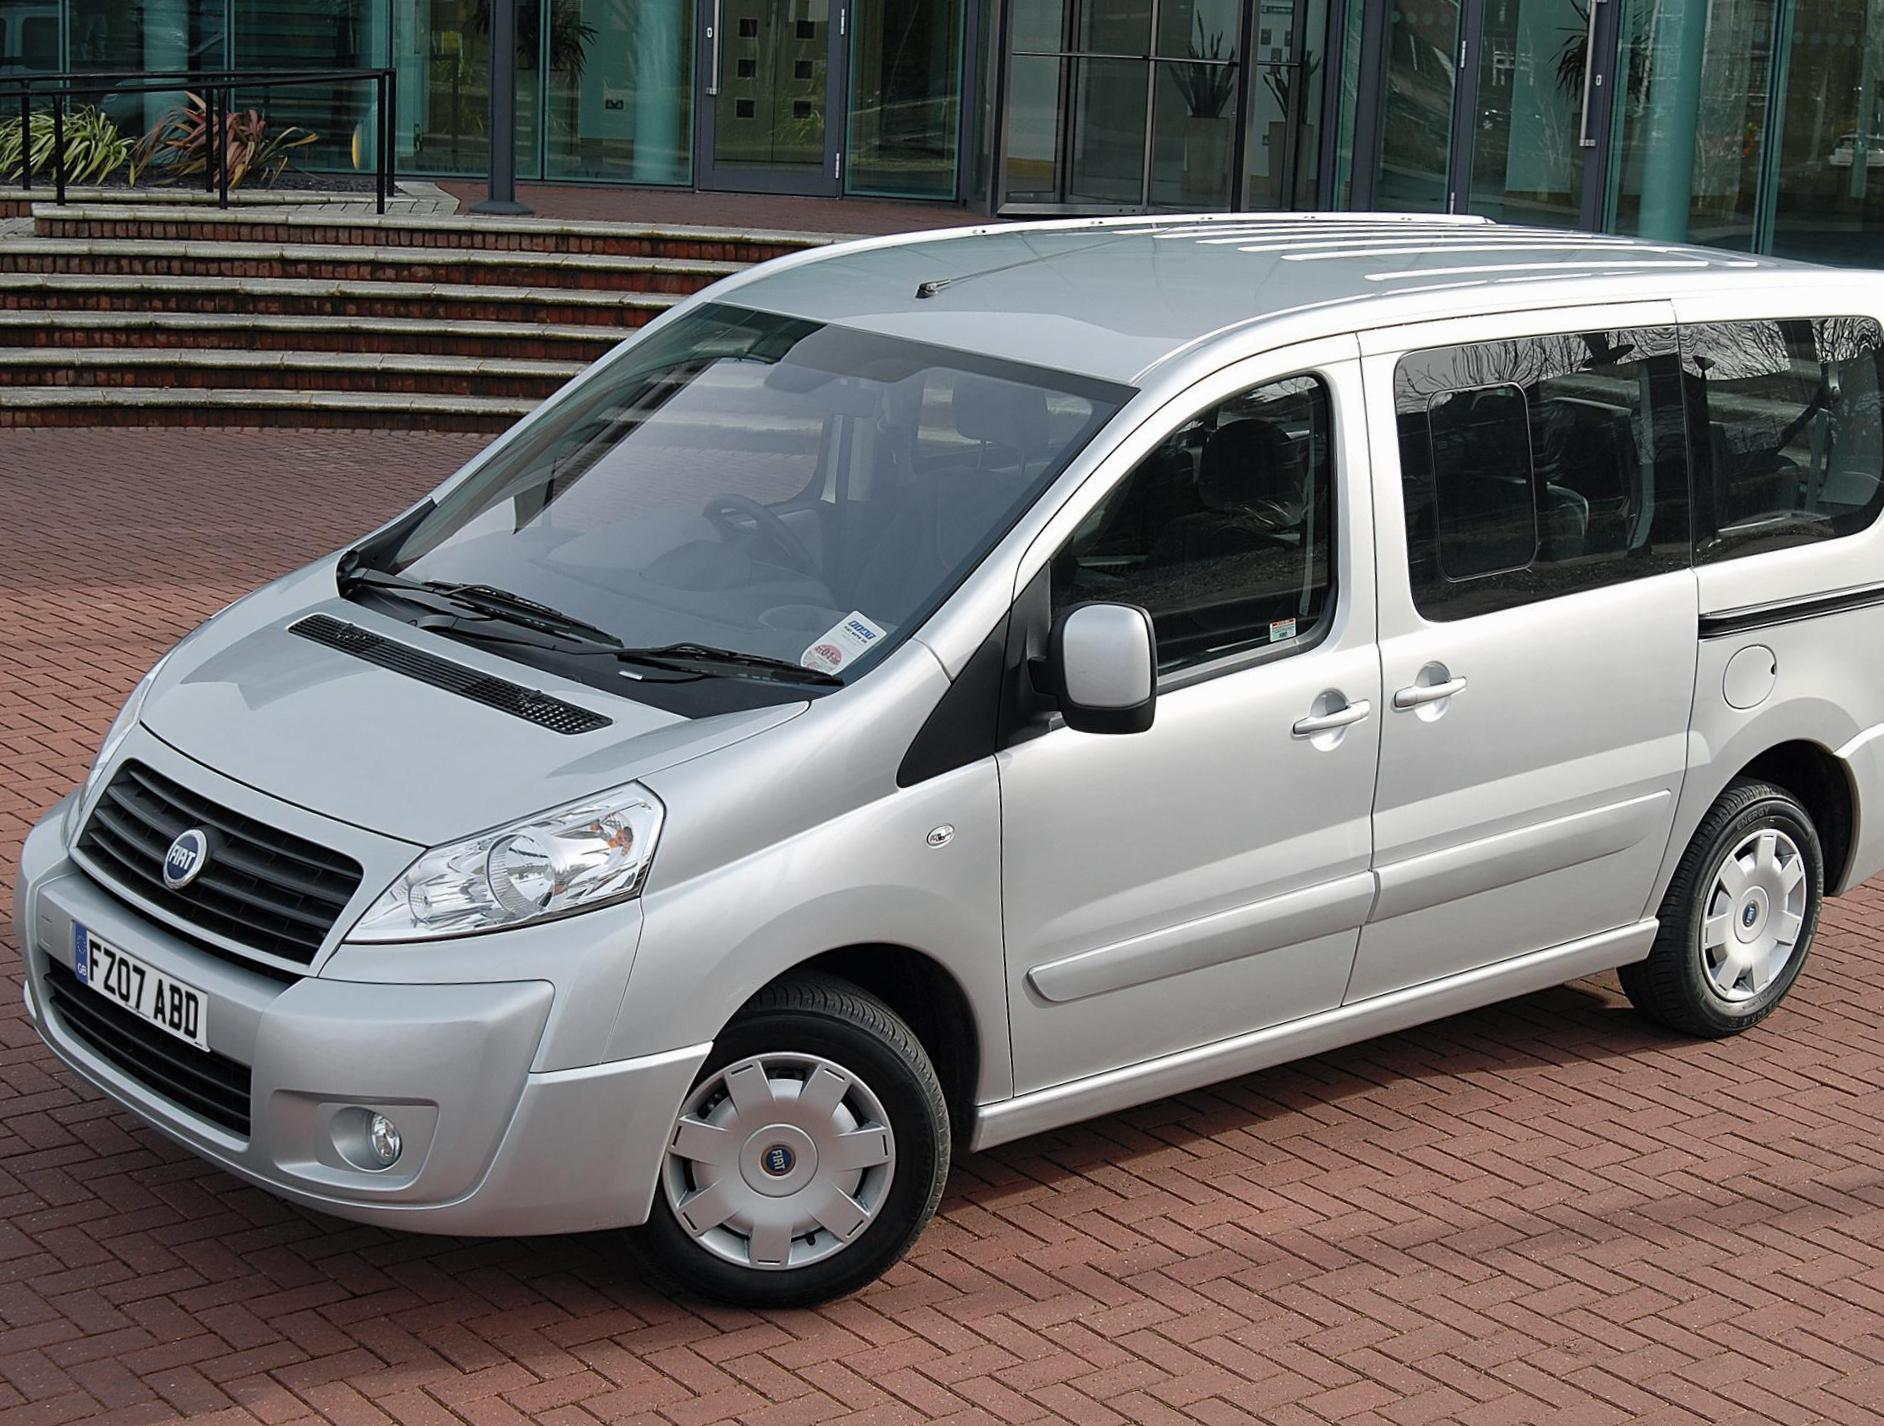 Scudo Panorama Fiat approved sedan